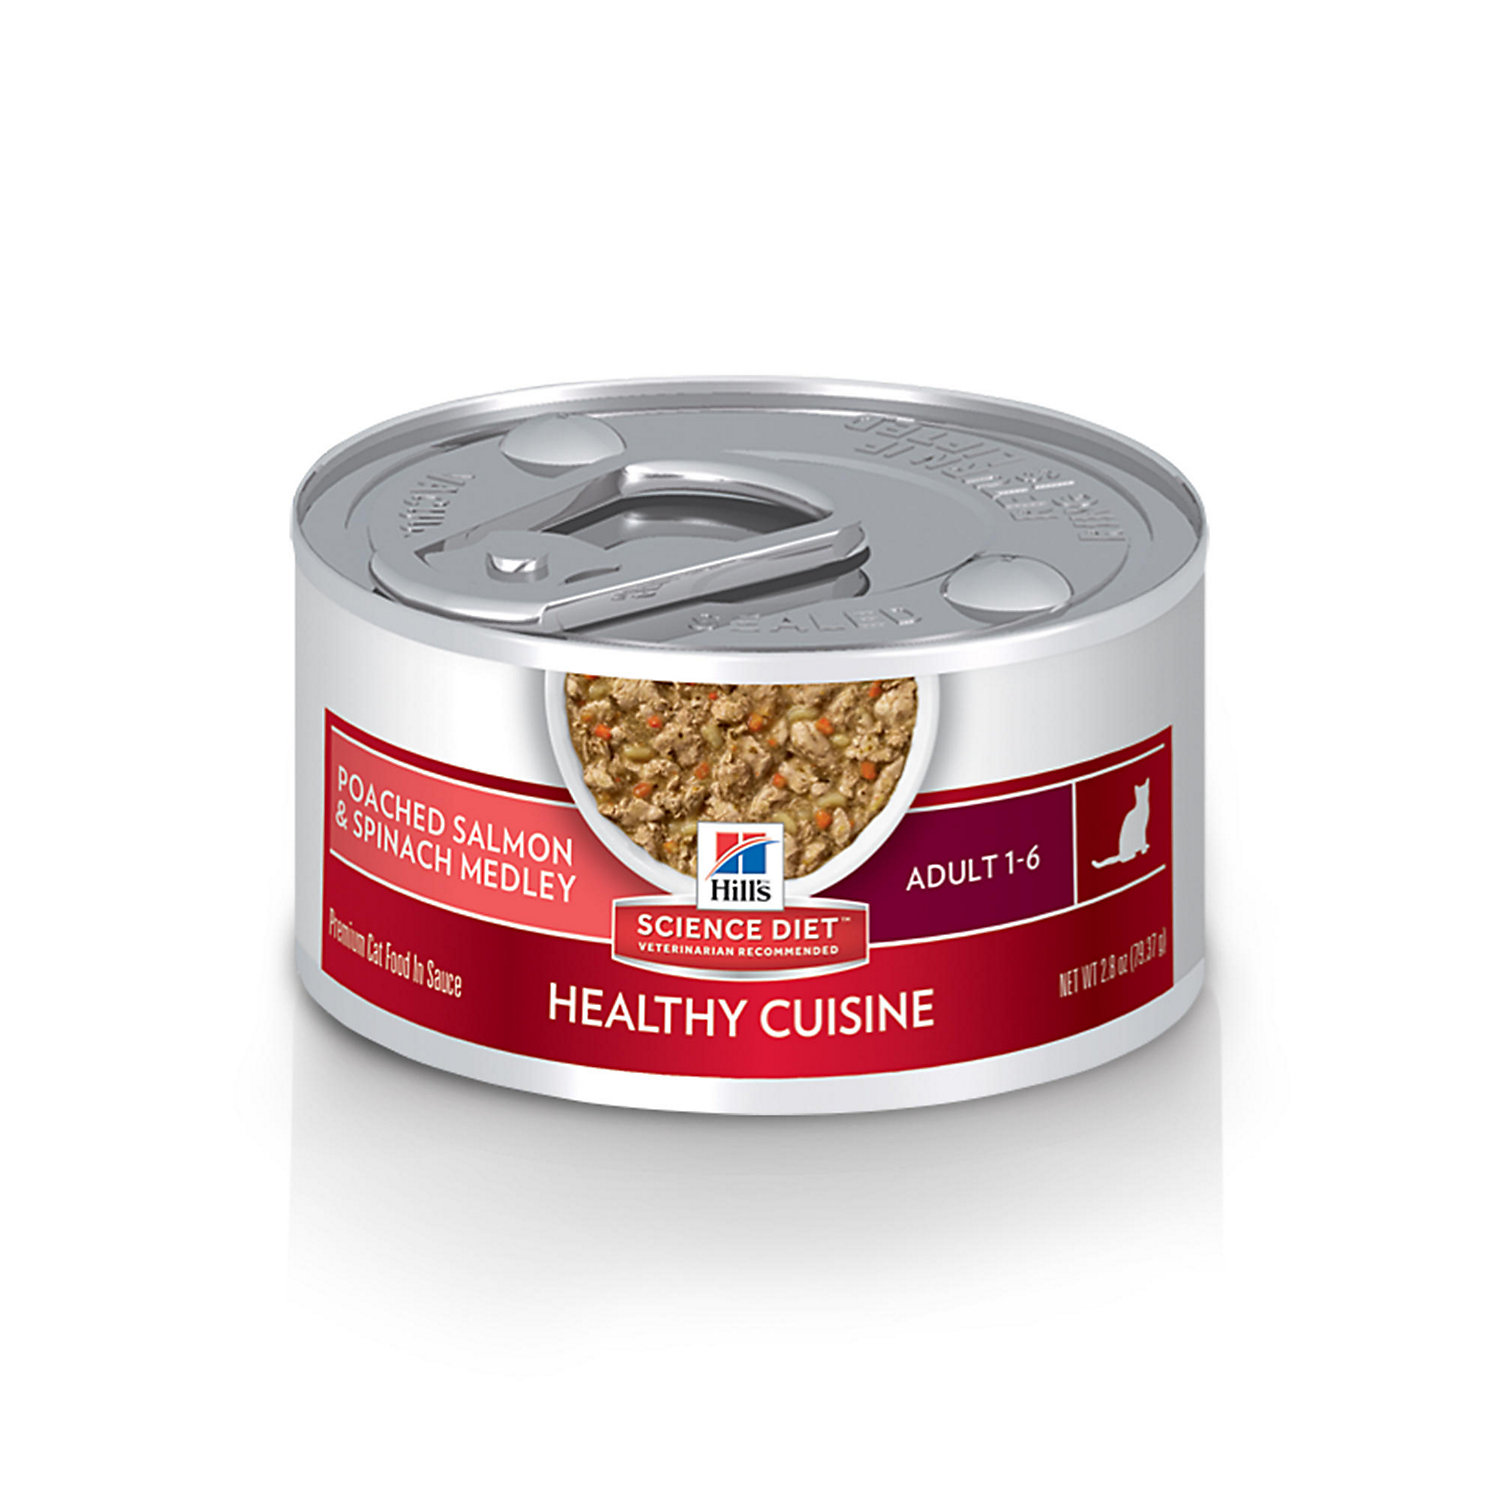 Hills Science Diet Adult Healthy Cuisine Poached Salmon & Spinach Medley Wet Cat Food, 2.8 Oz., <br /><br />Case of 24